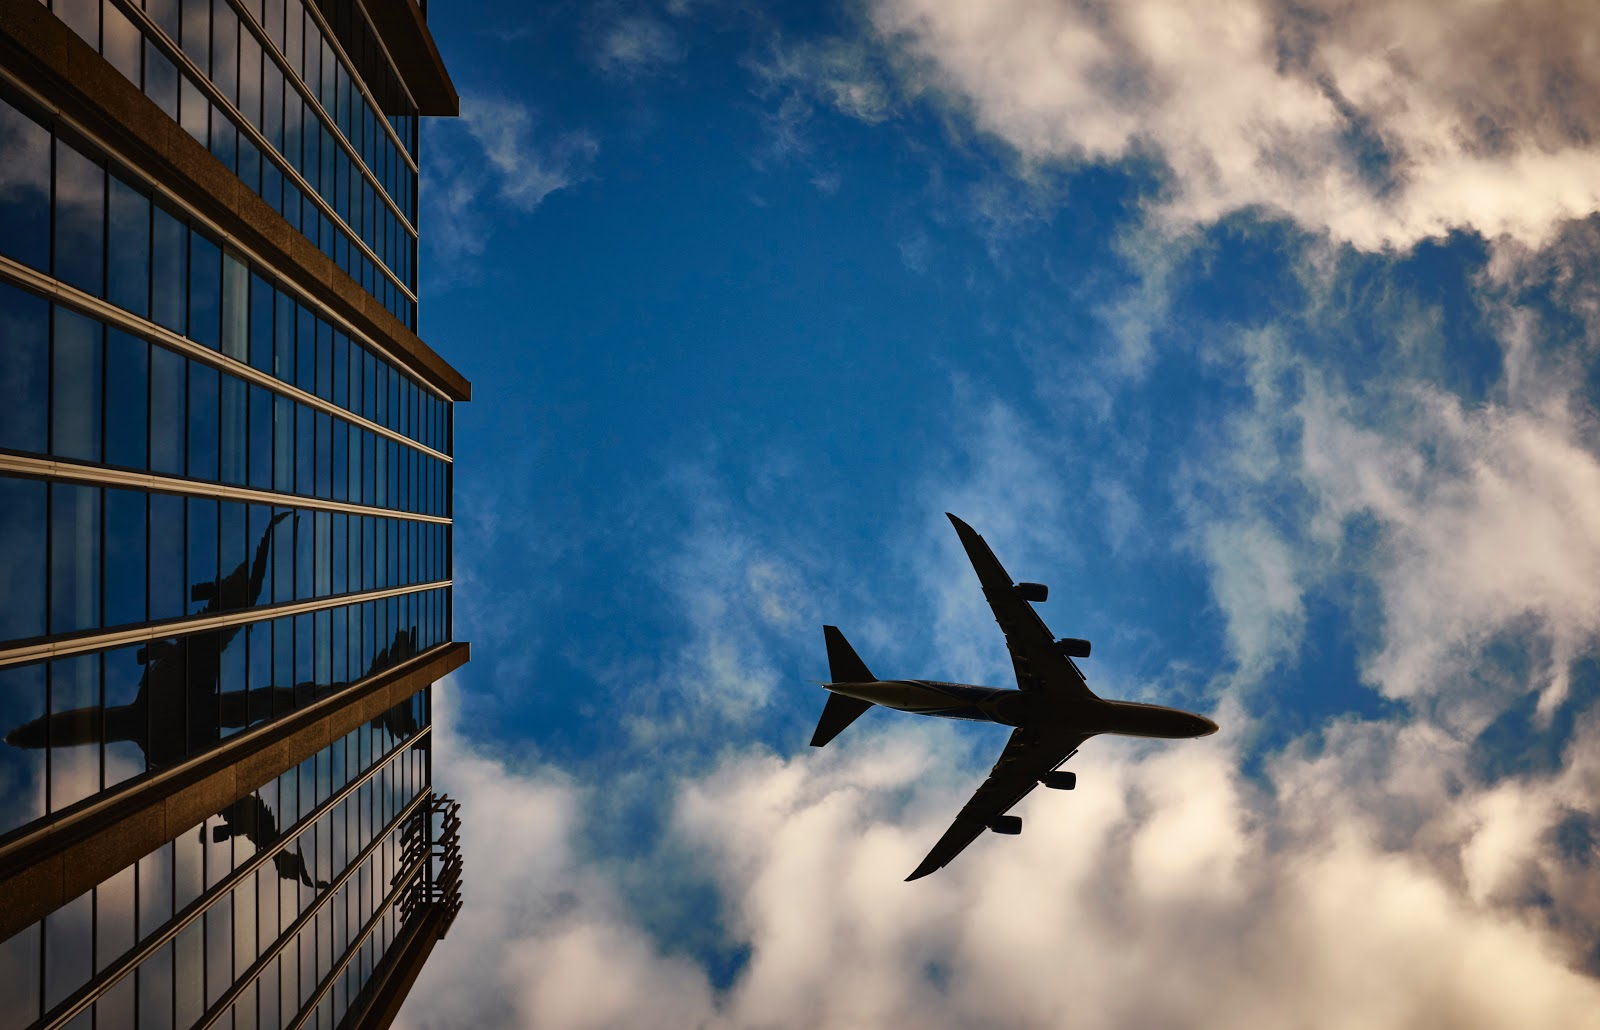 ground view of airplane flying over building